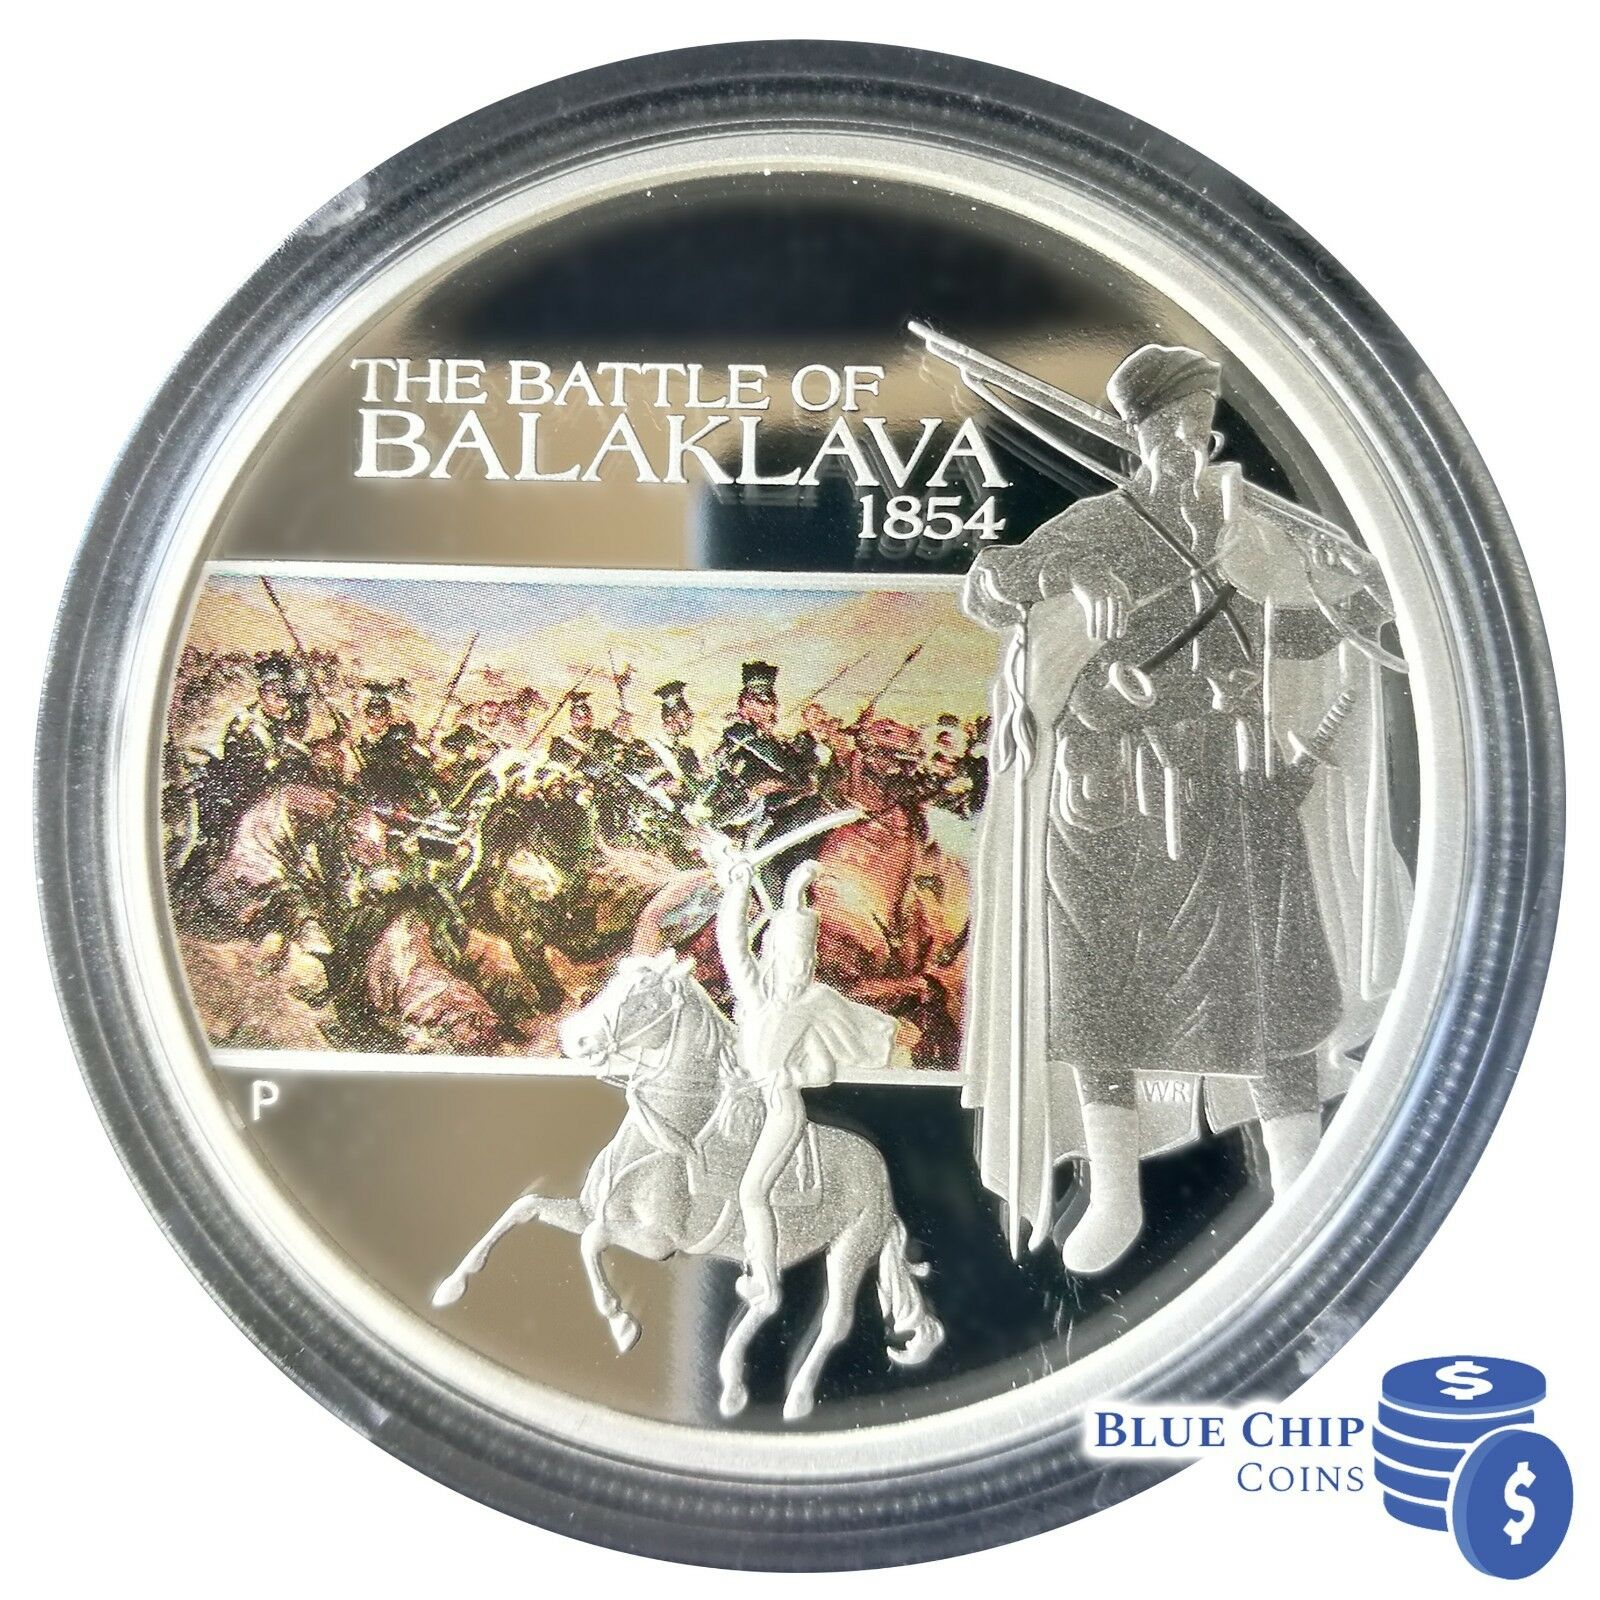 2009 $1 THERMOPYLAE FAMOUS BATTLES IN HISTORY 1oz SILVER PROOF COIN